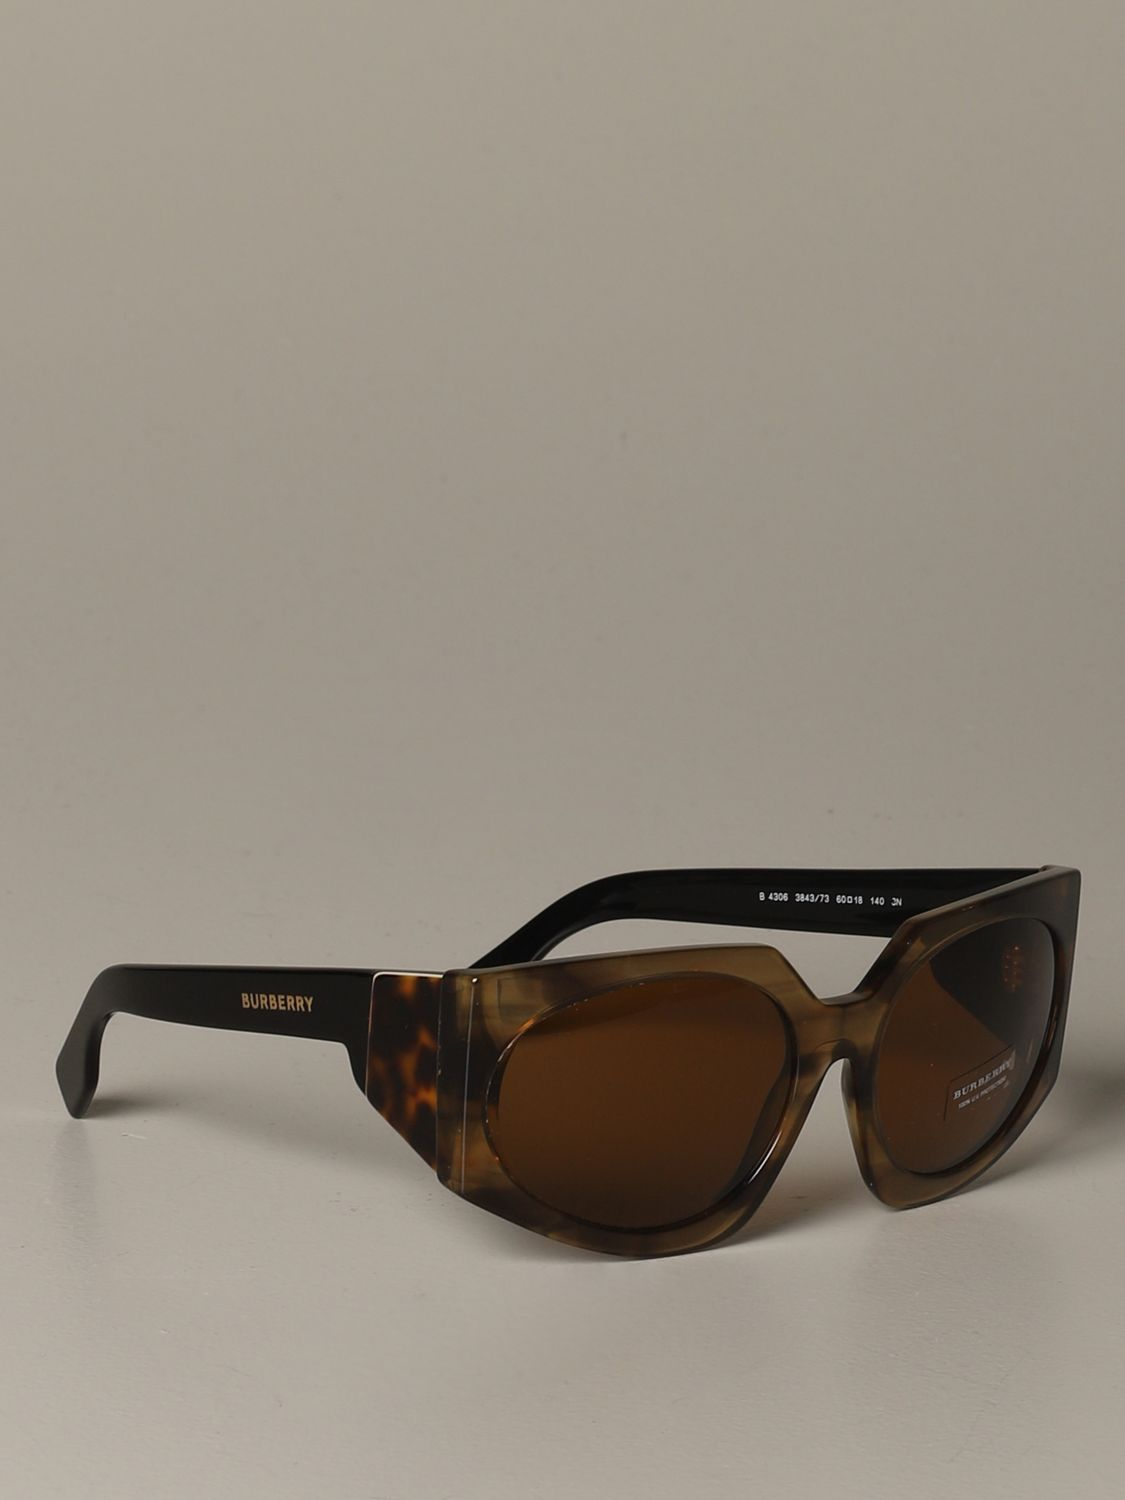 Brille Burberry: Brille damen Burberry braun 1